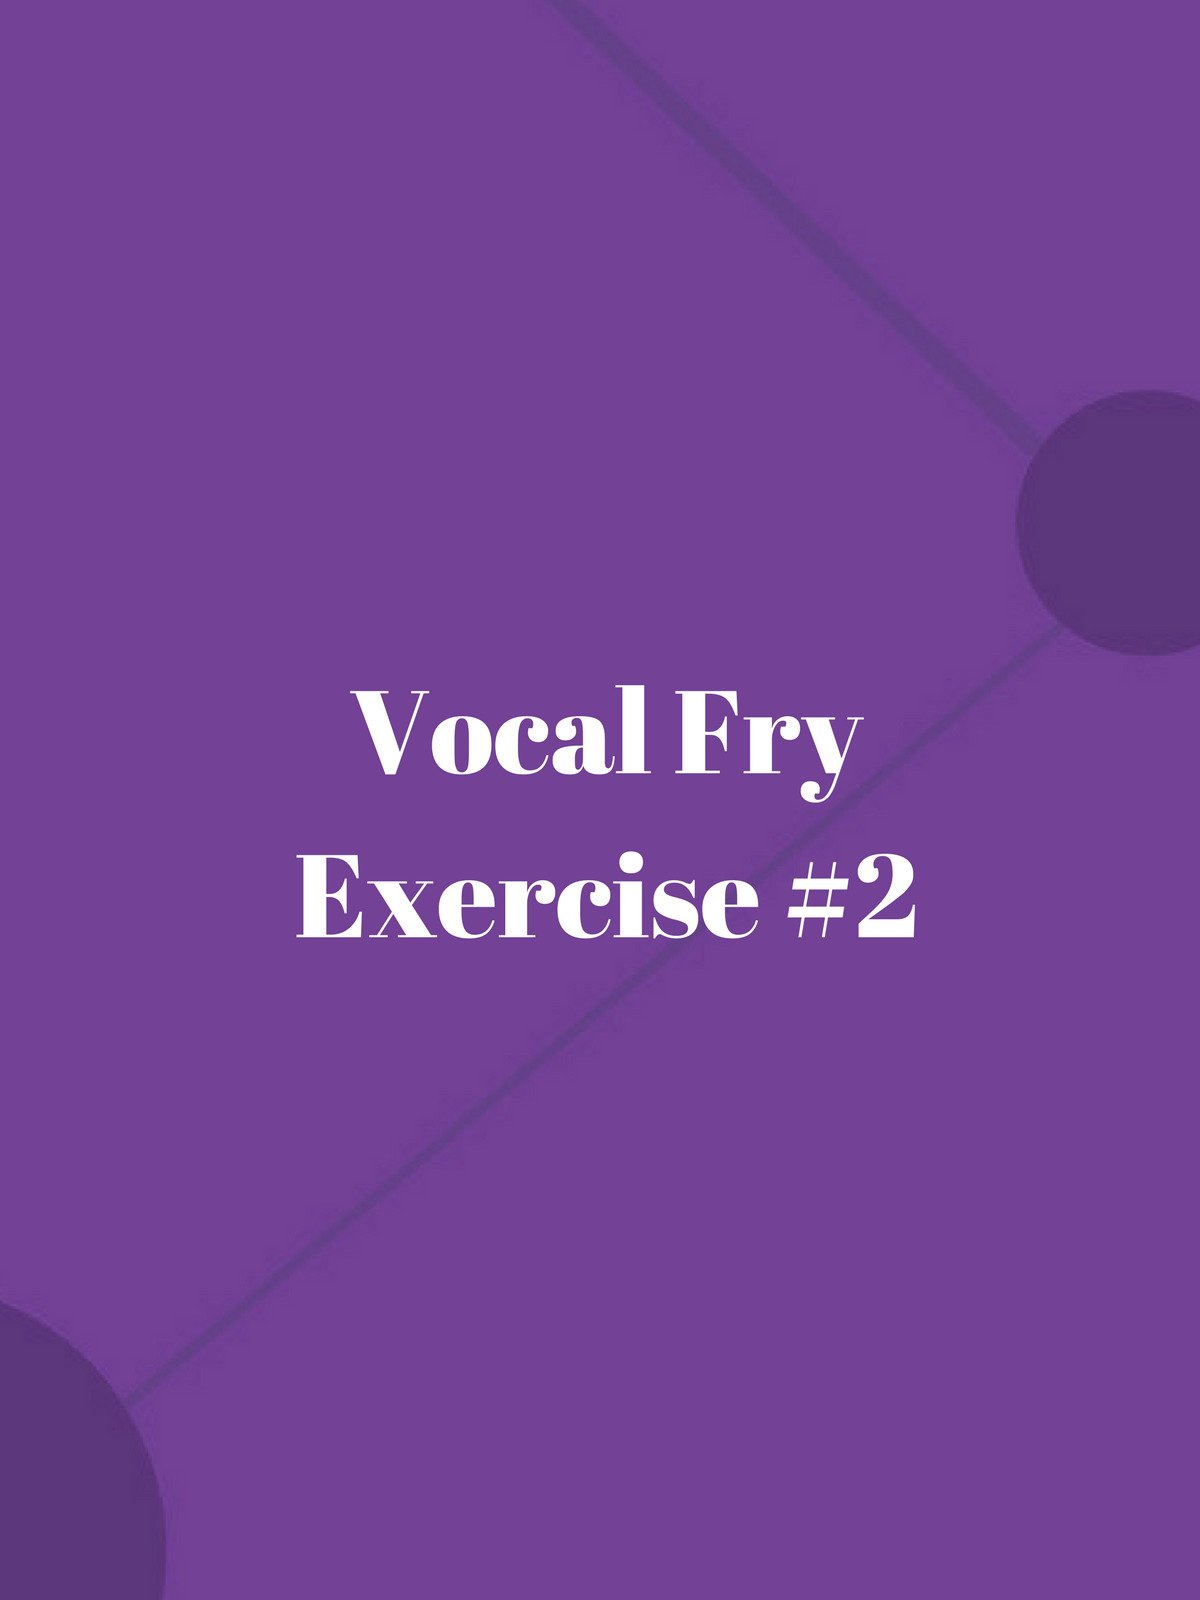 Vocal Fry Exercise #2